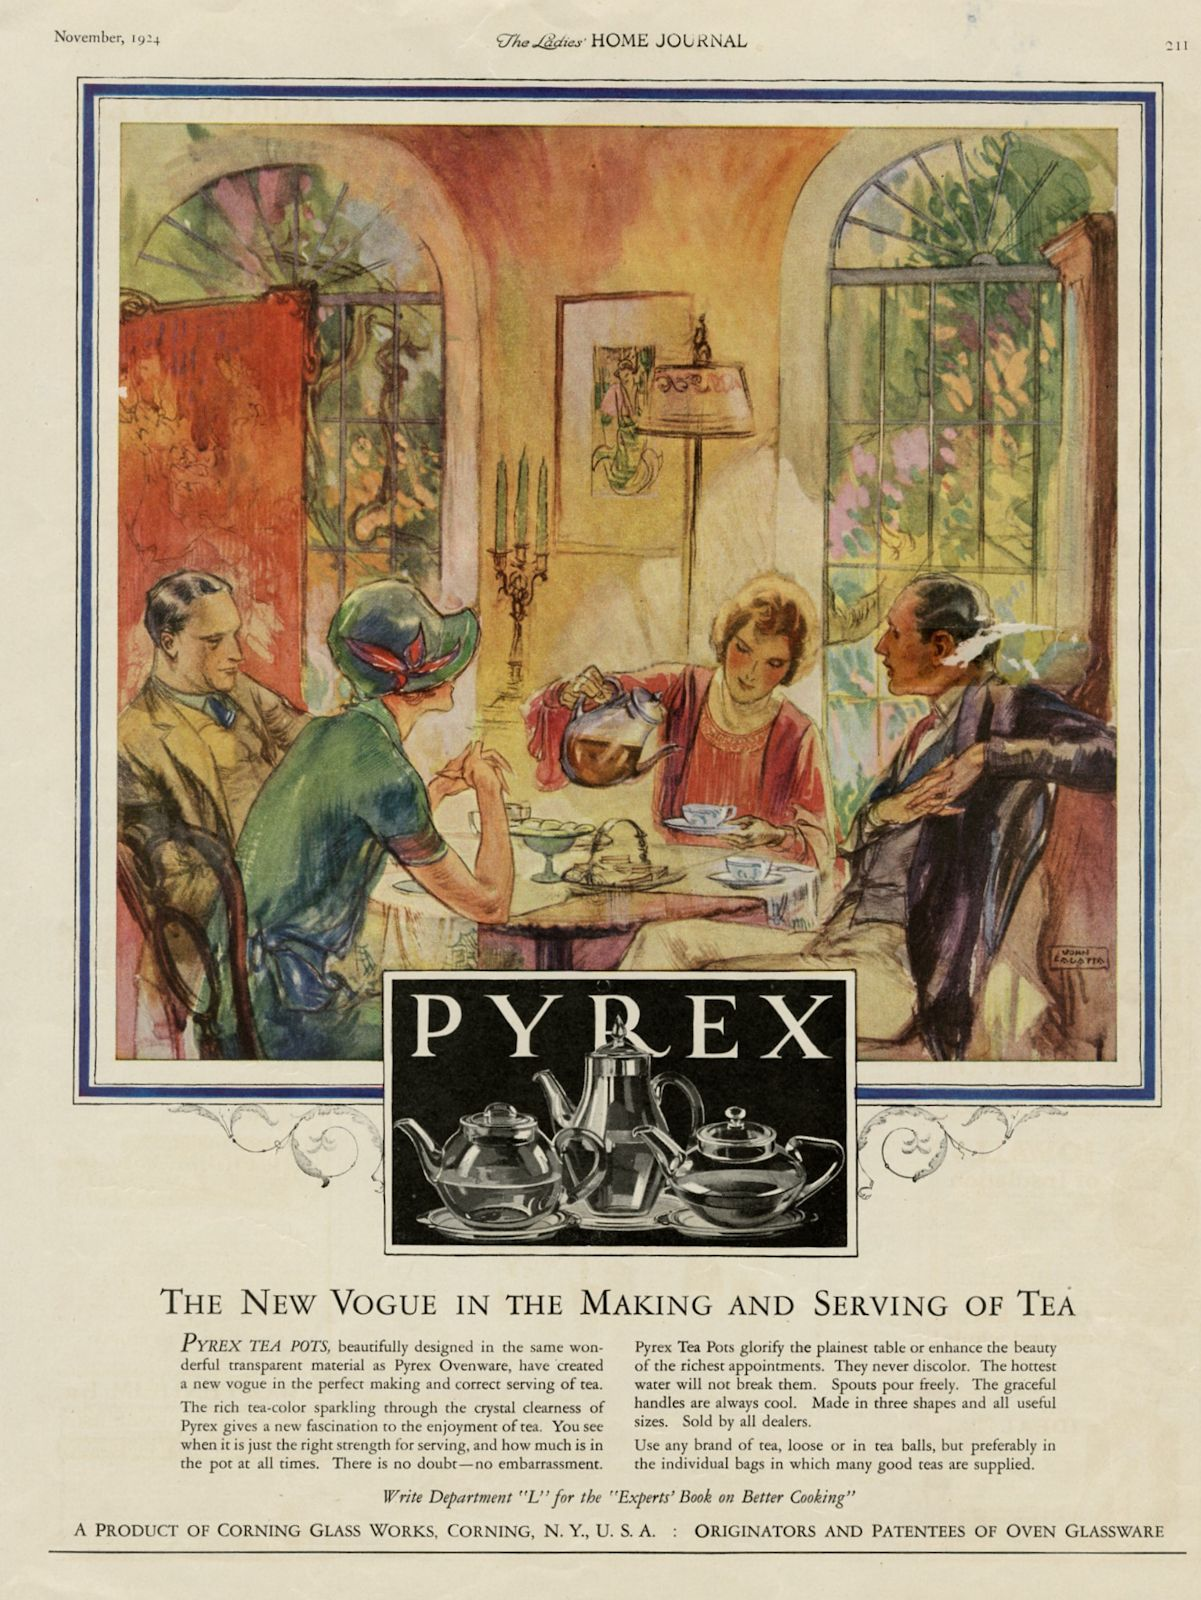 """The New Vogue in the Making and Serving of Tea"" [advertisement], Corning Glass Works, Ladies' Home Journal, November 1924, pp. 211."